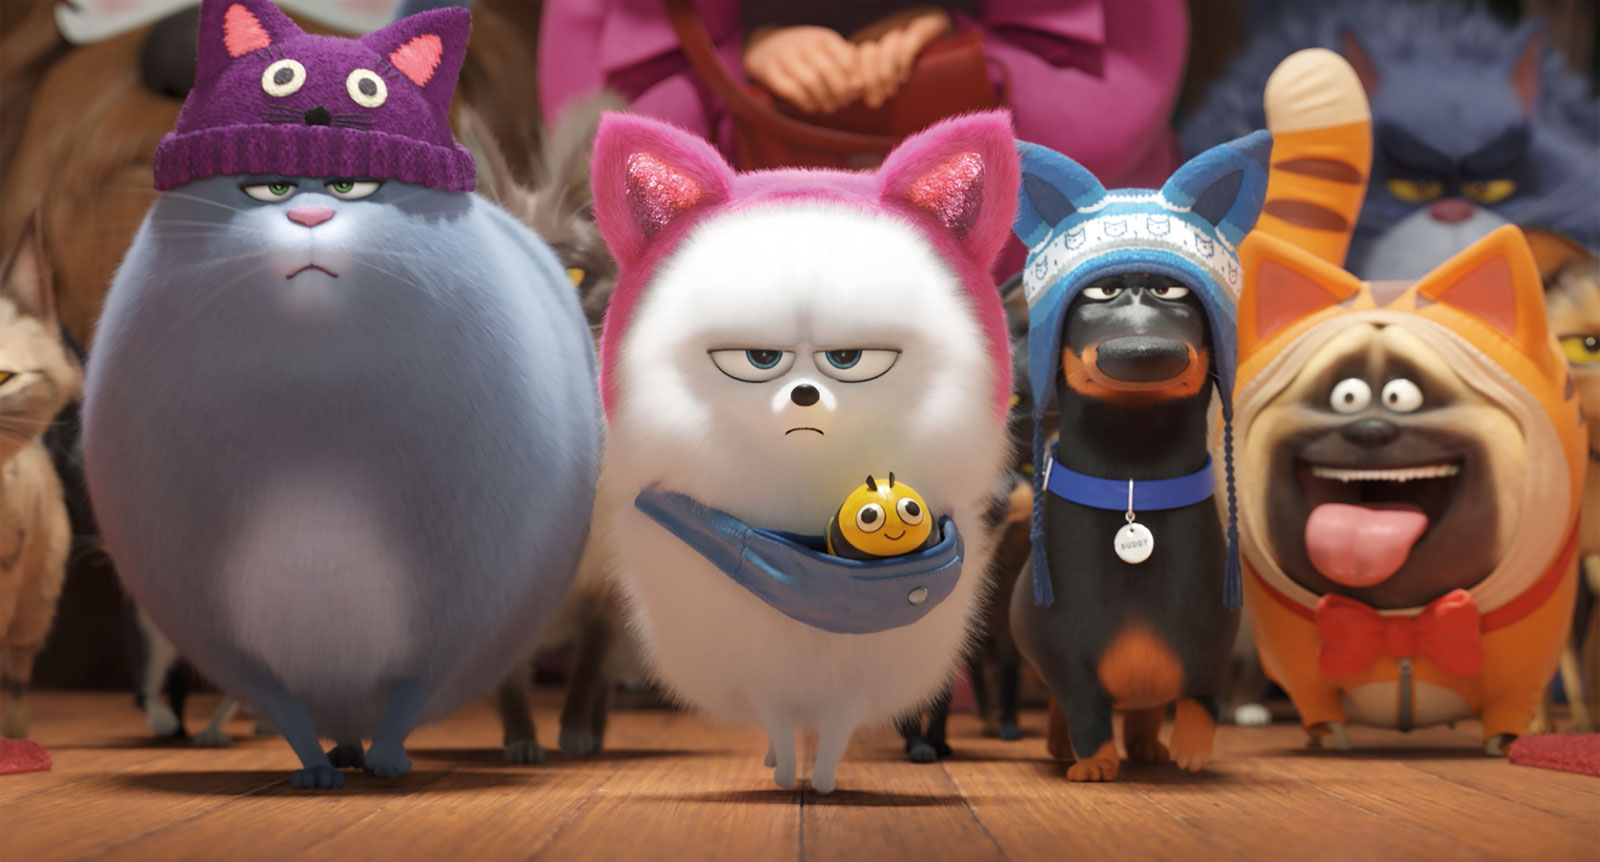 Nightmarish Detour Review: THE SECRET LIFE OF PETS 2